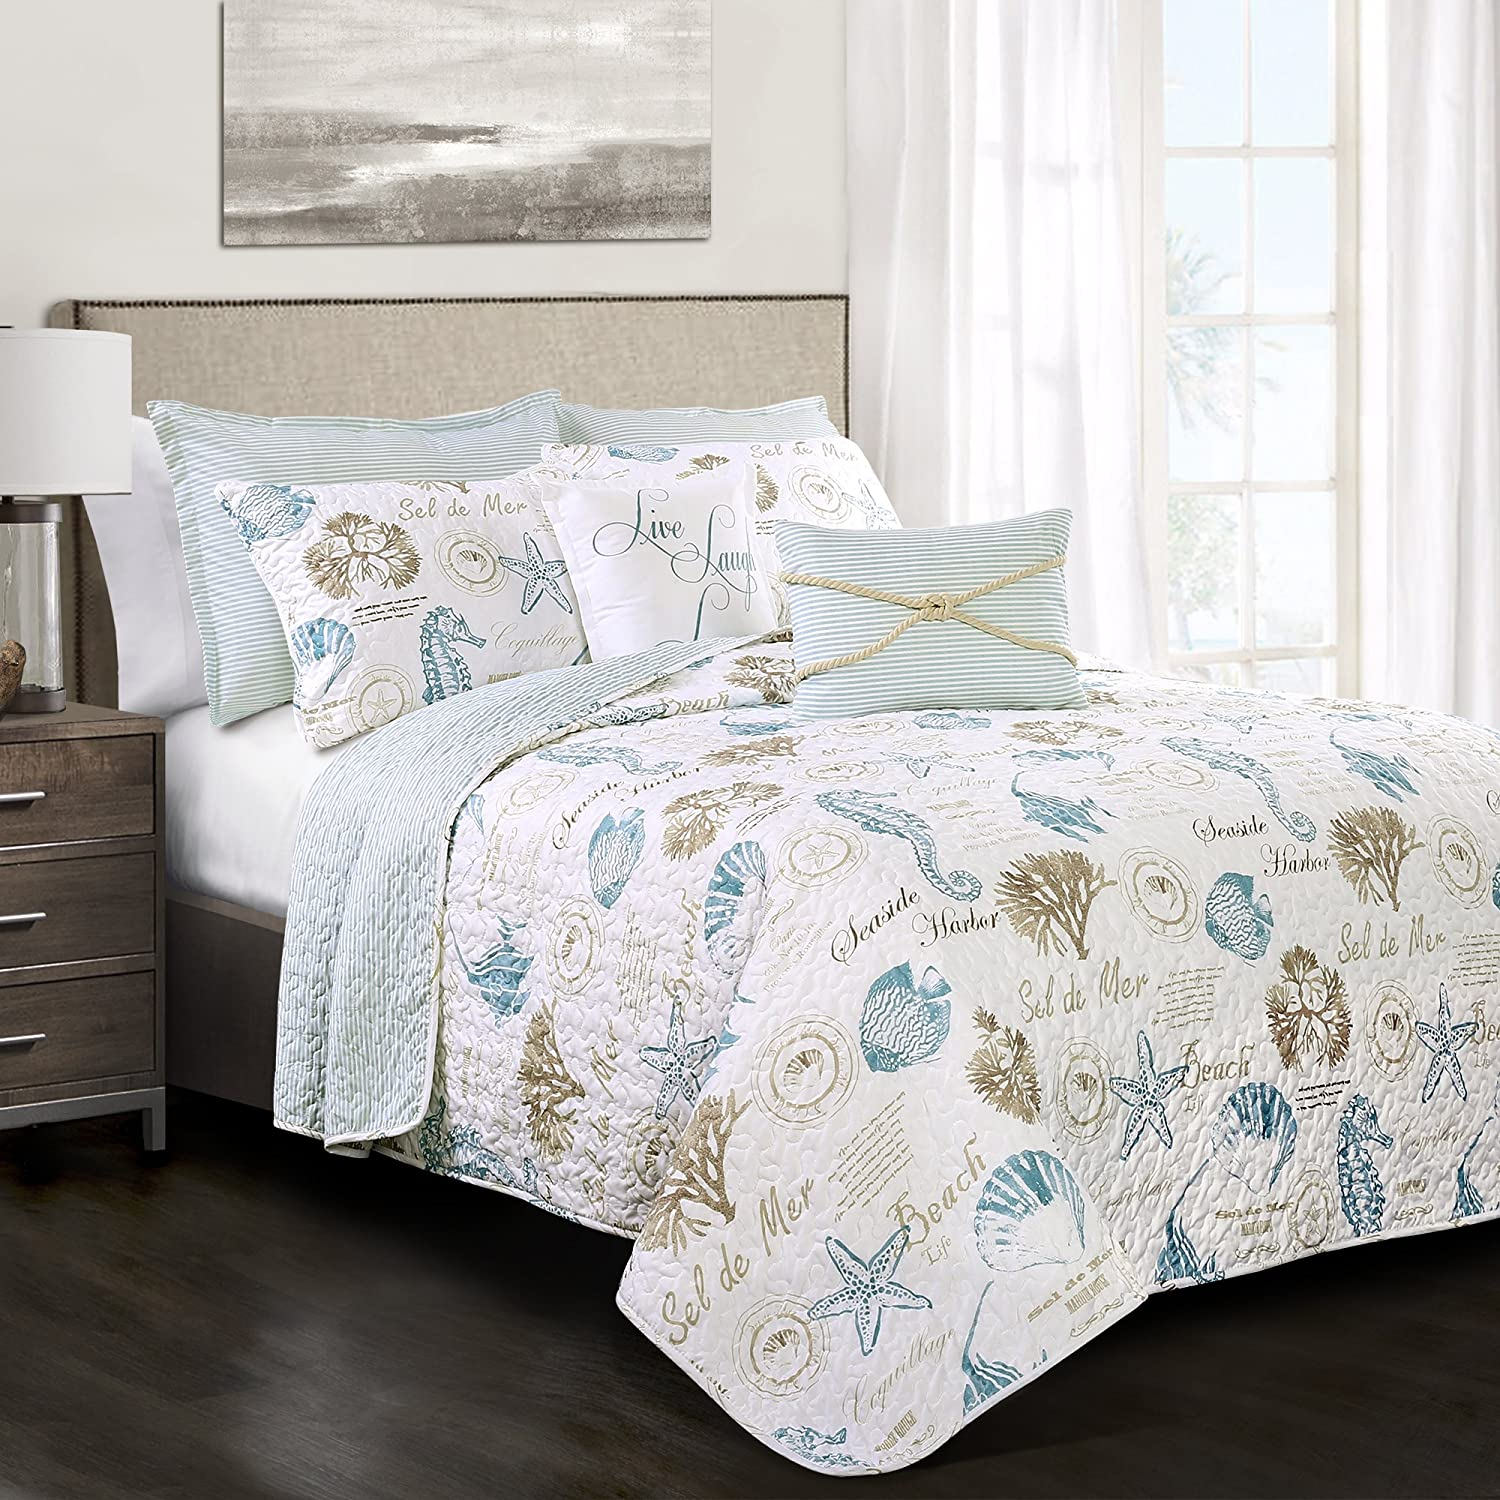 Lush Decor 16T002242 7 Piece Harbor Life Quilt Set, Full/Queen, Blue/Taupe